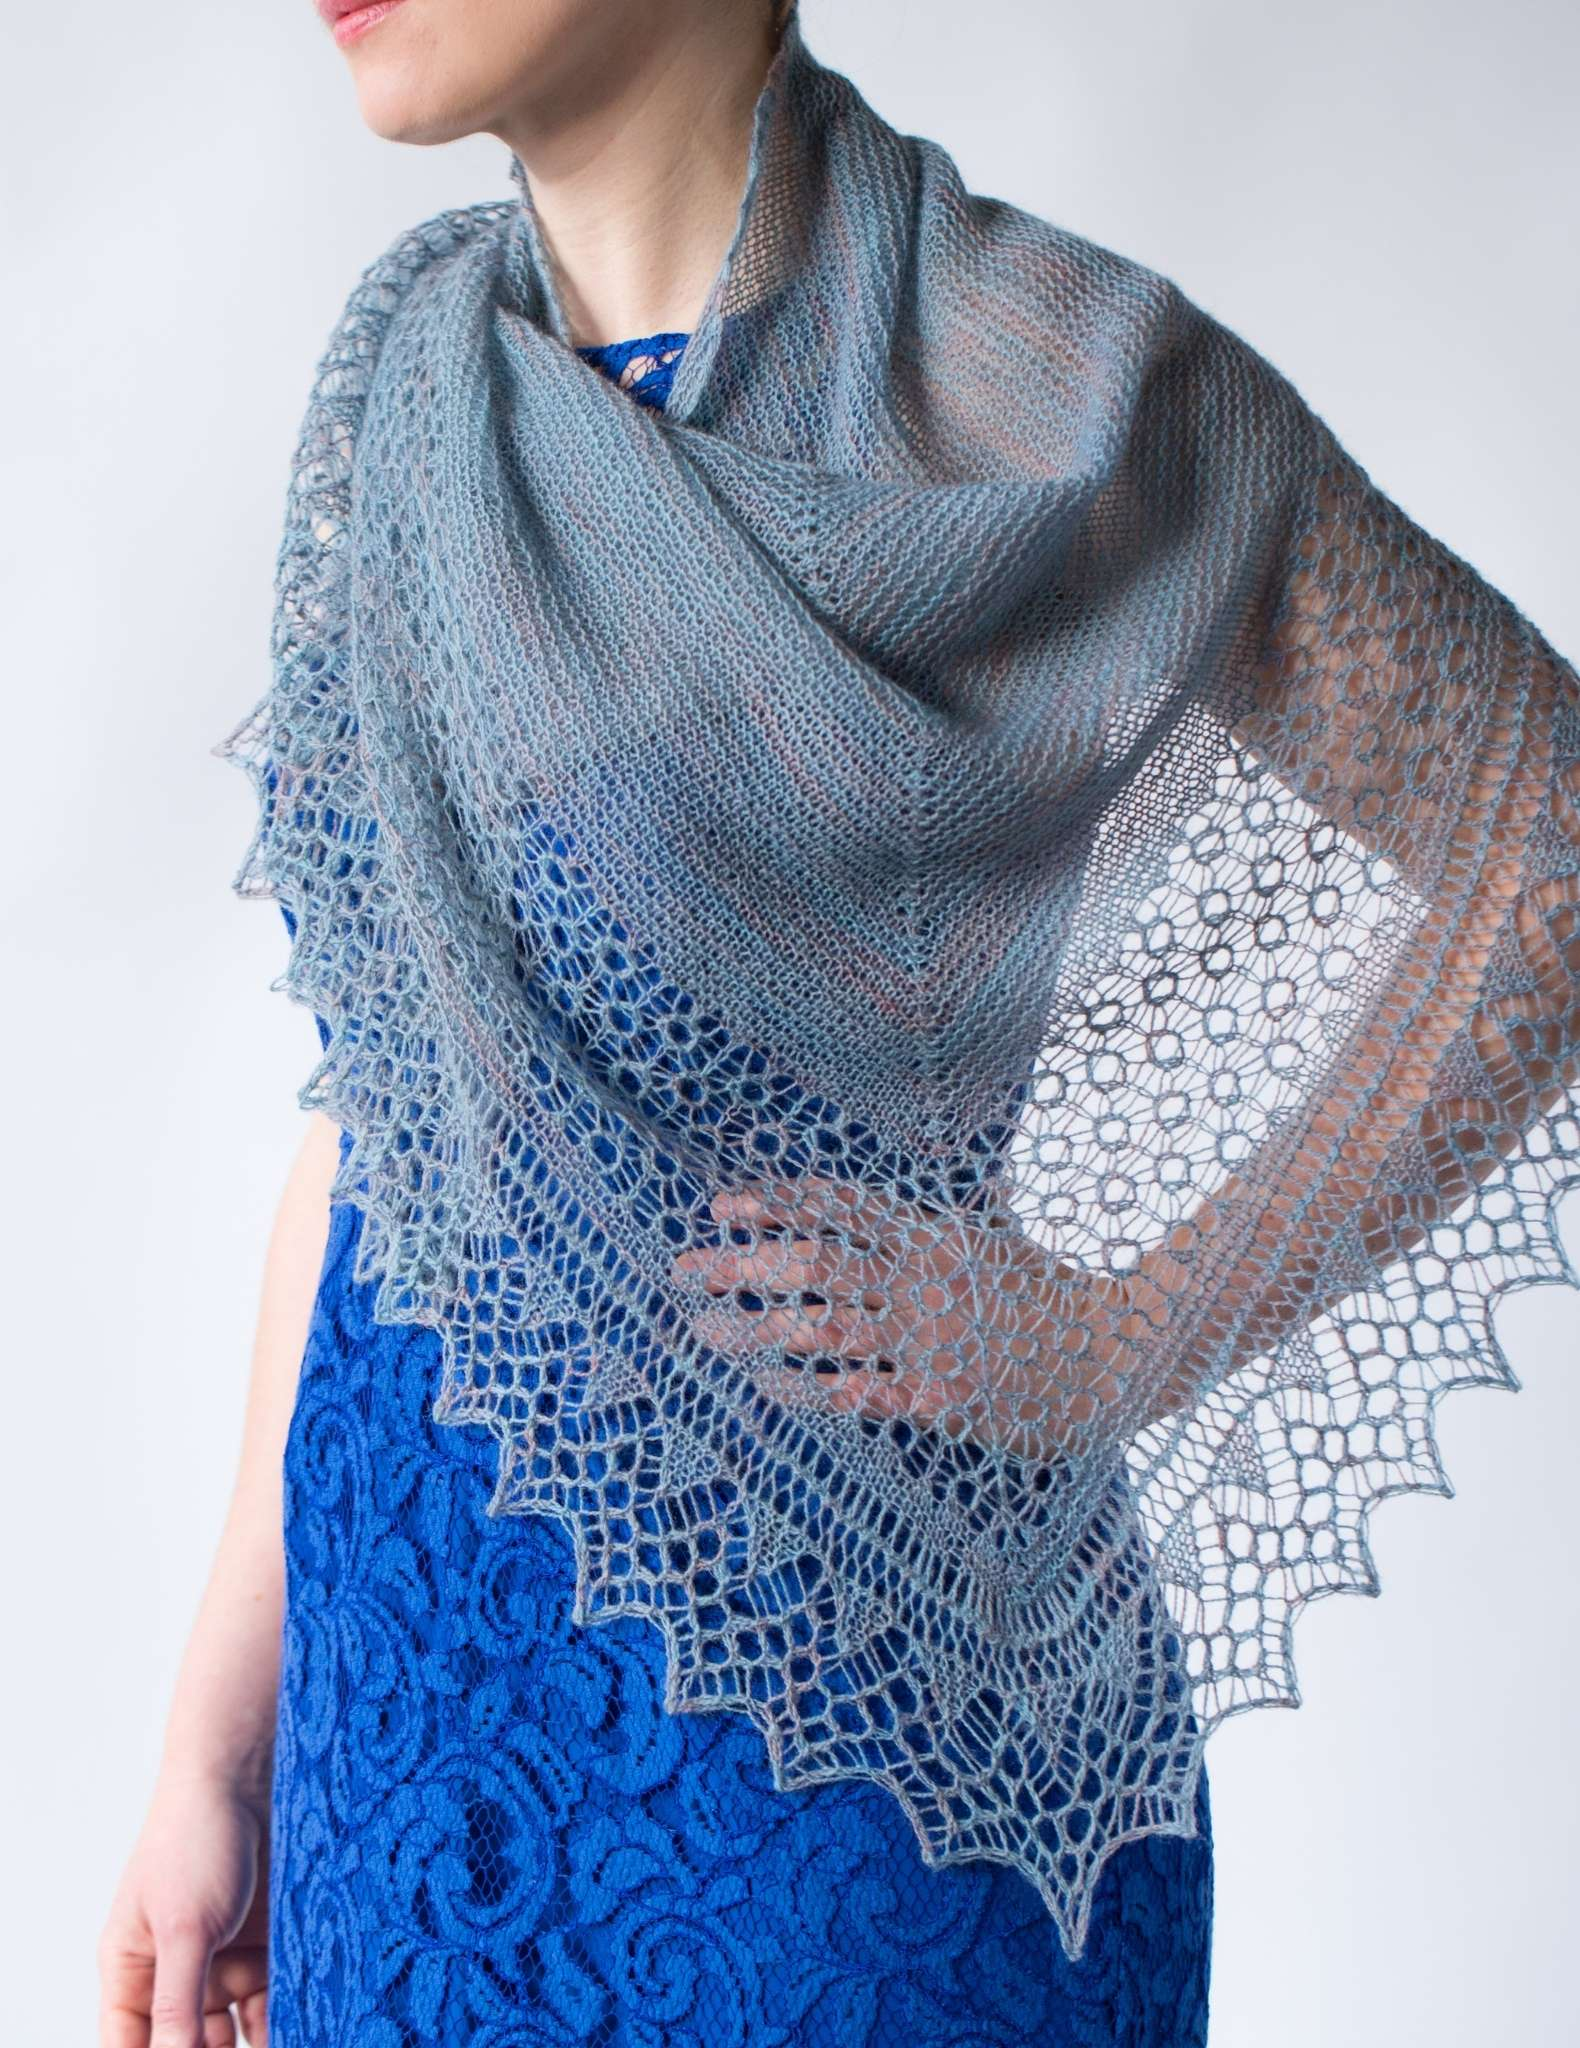 Knitted shawl patterns perfect for Spring